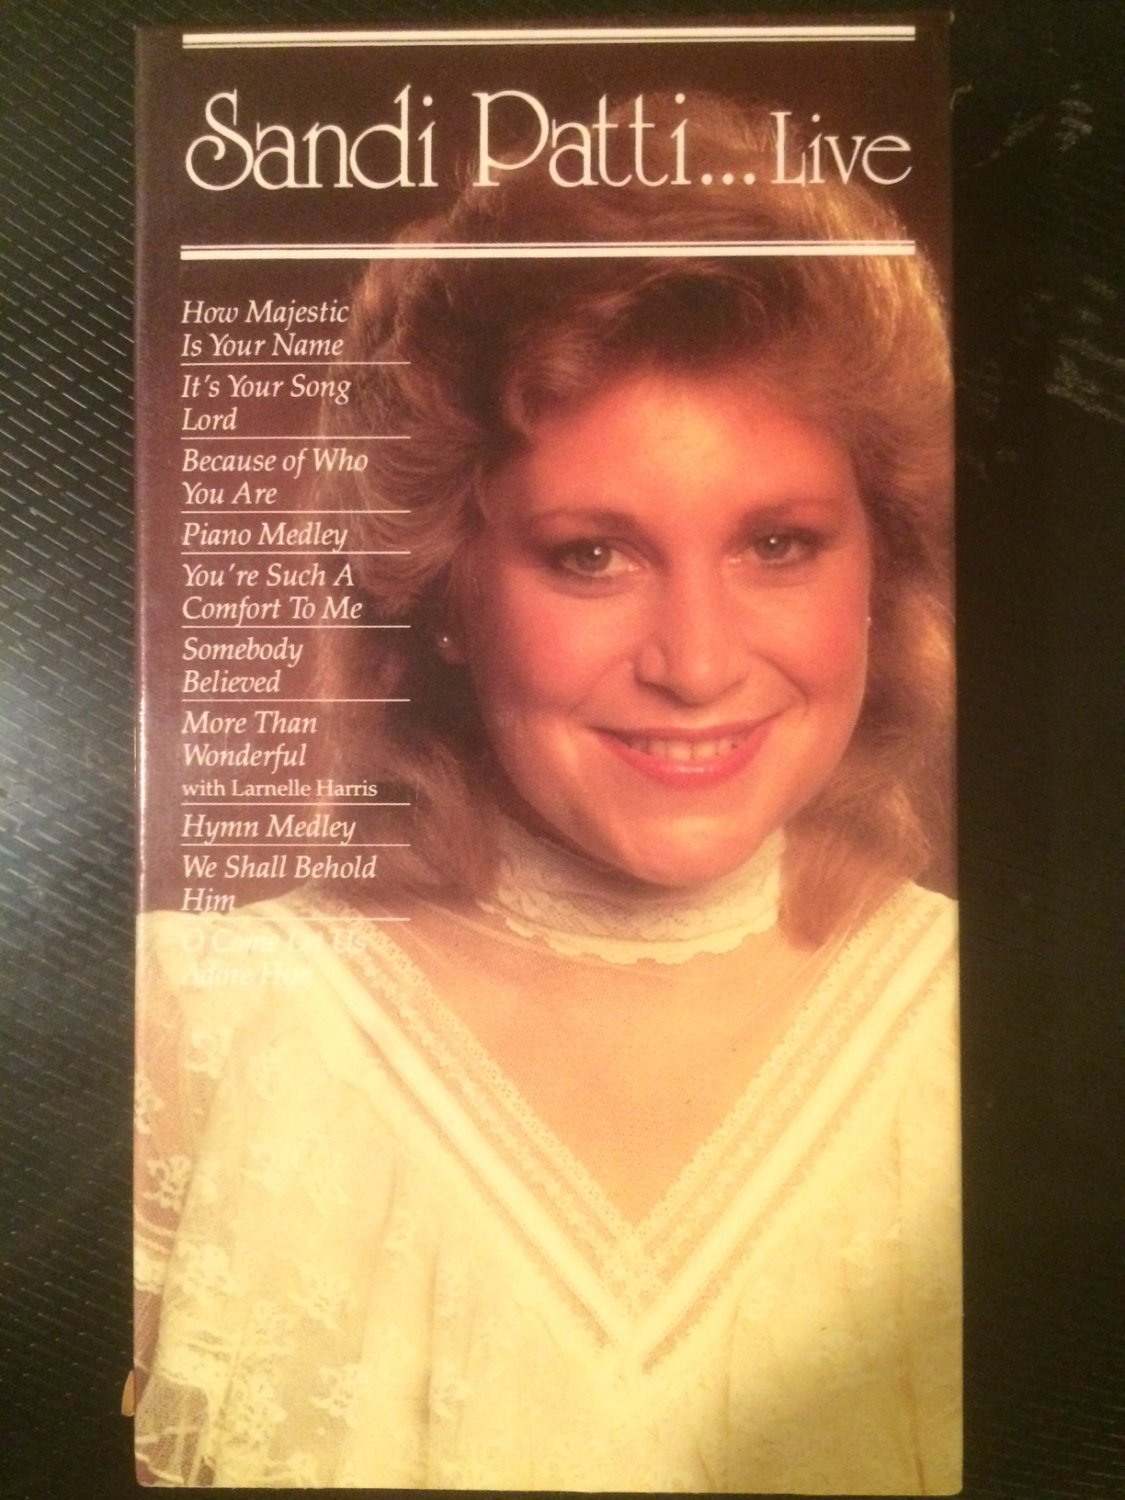 VHS - Sandi Patti...Live - Used - NOT ON DVD